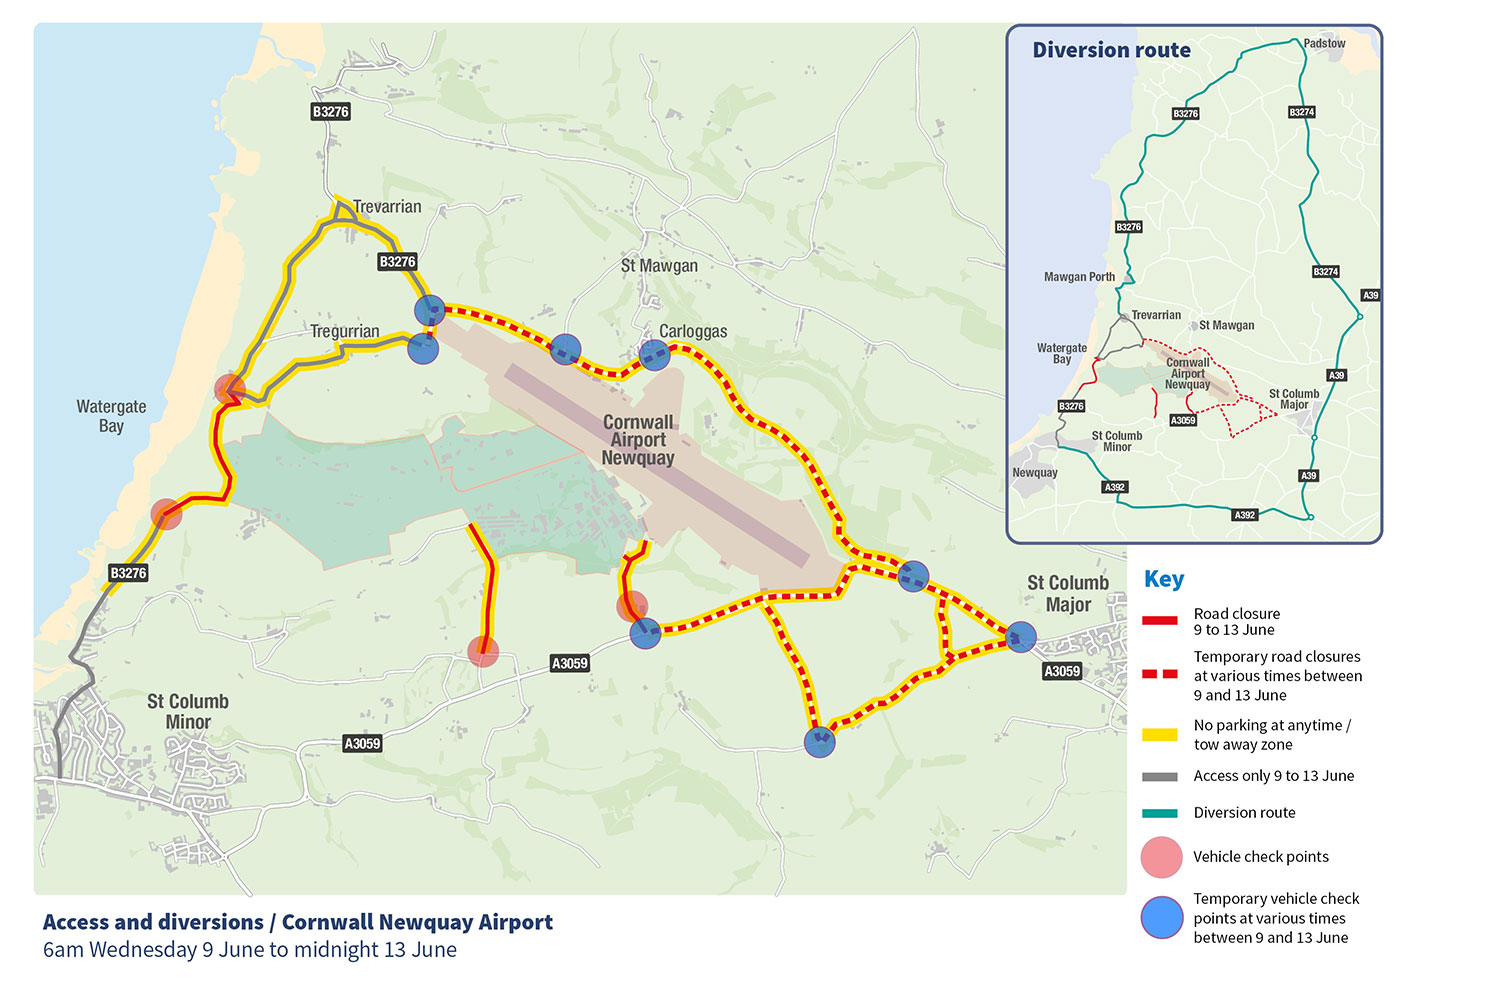 Map of access and diversion routes for G7 summit in Newquay